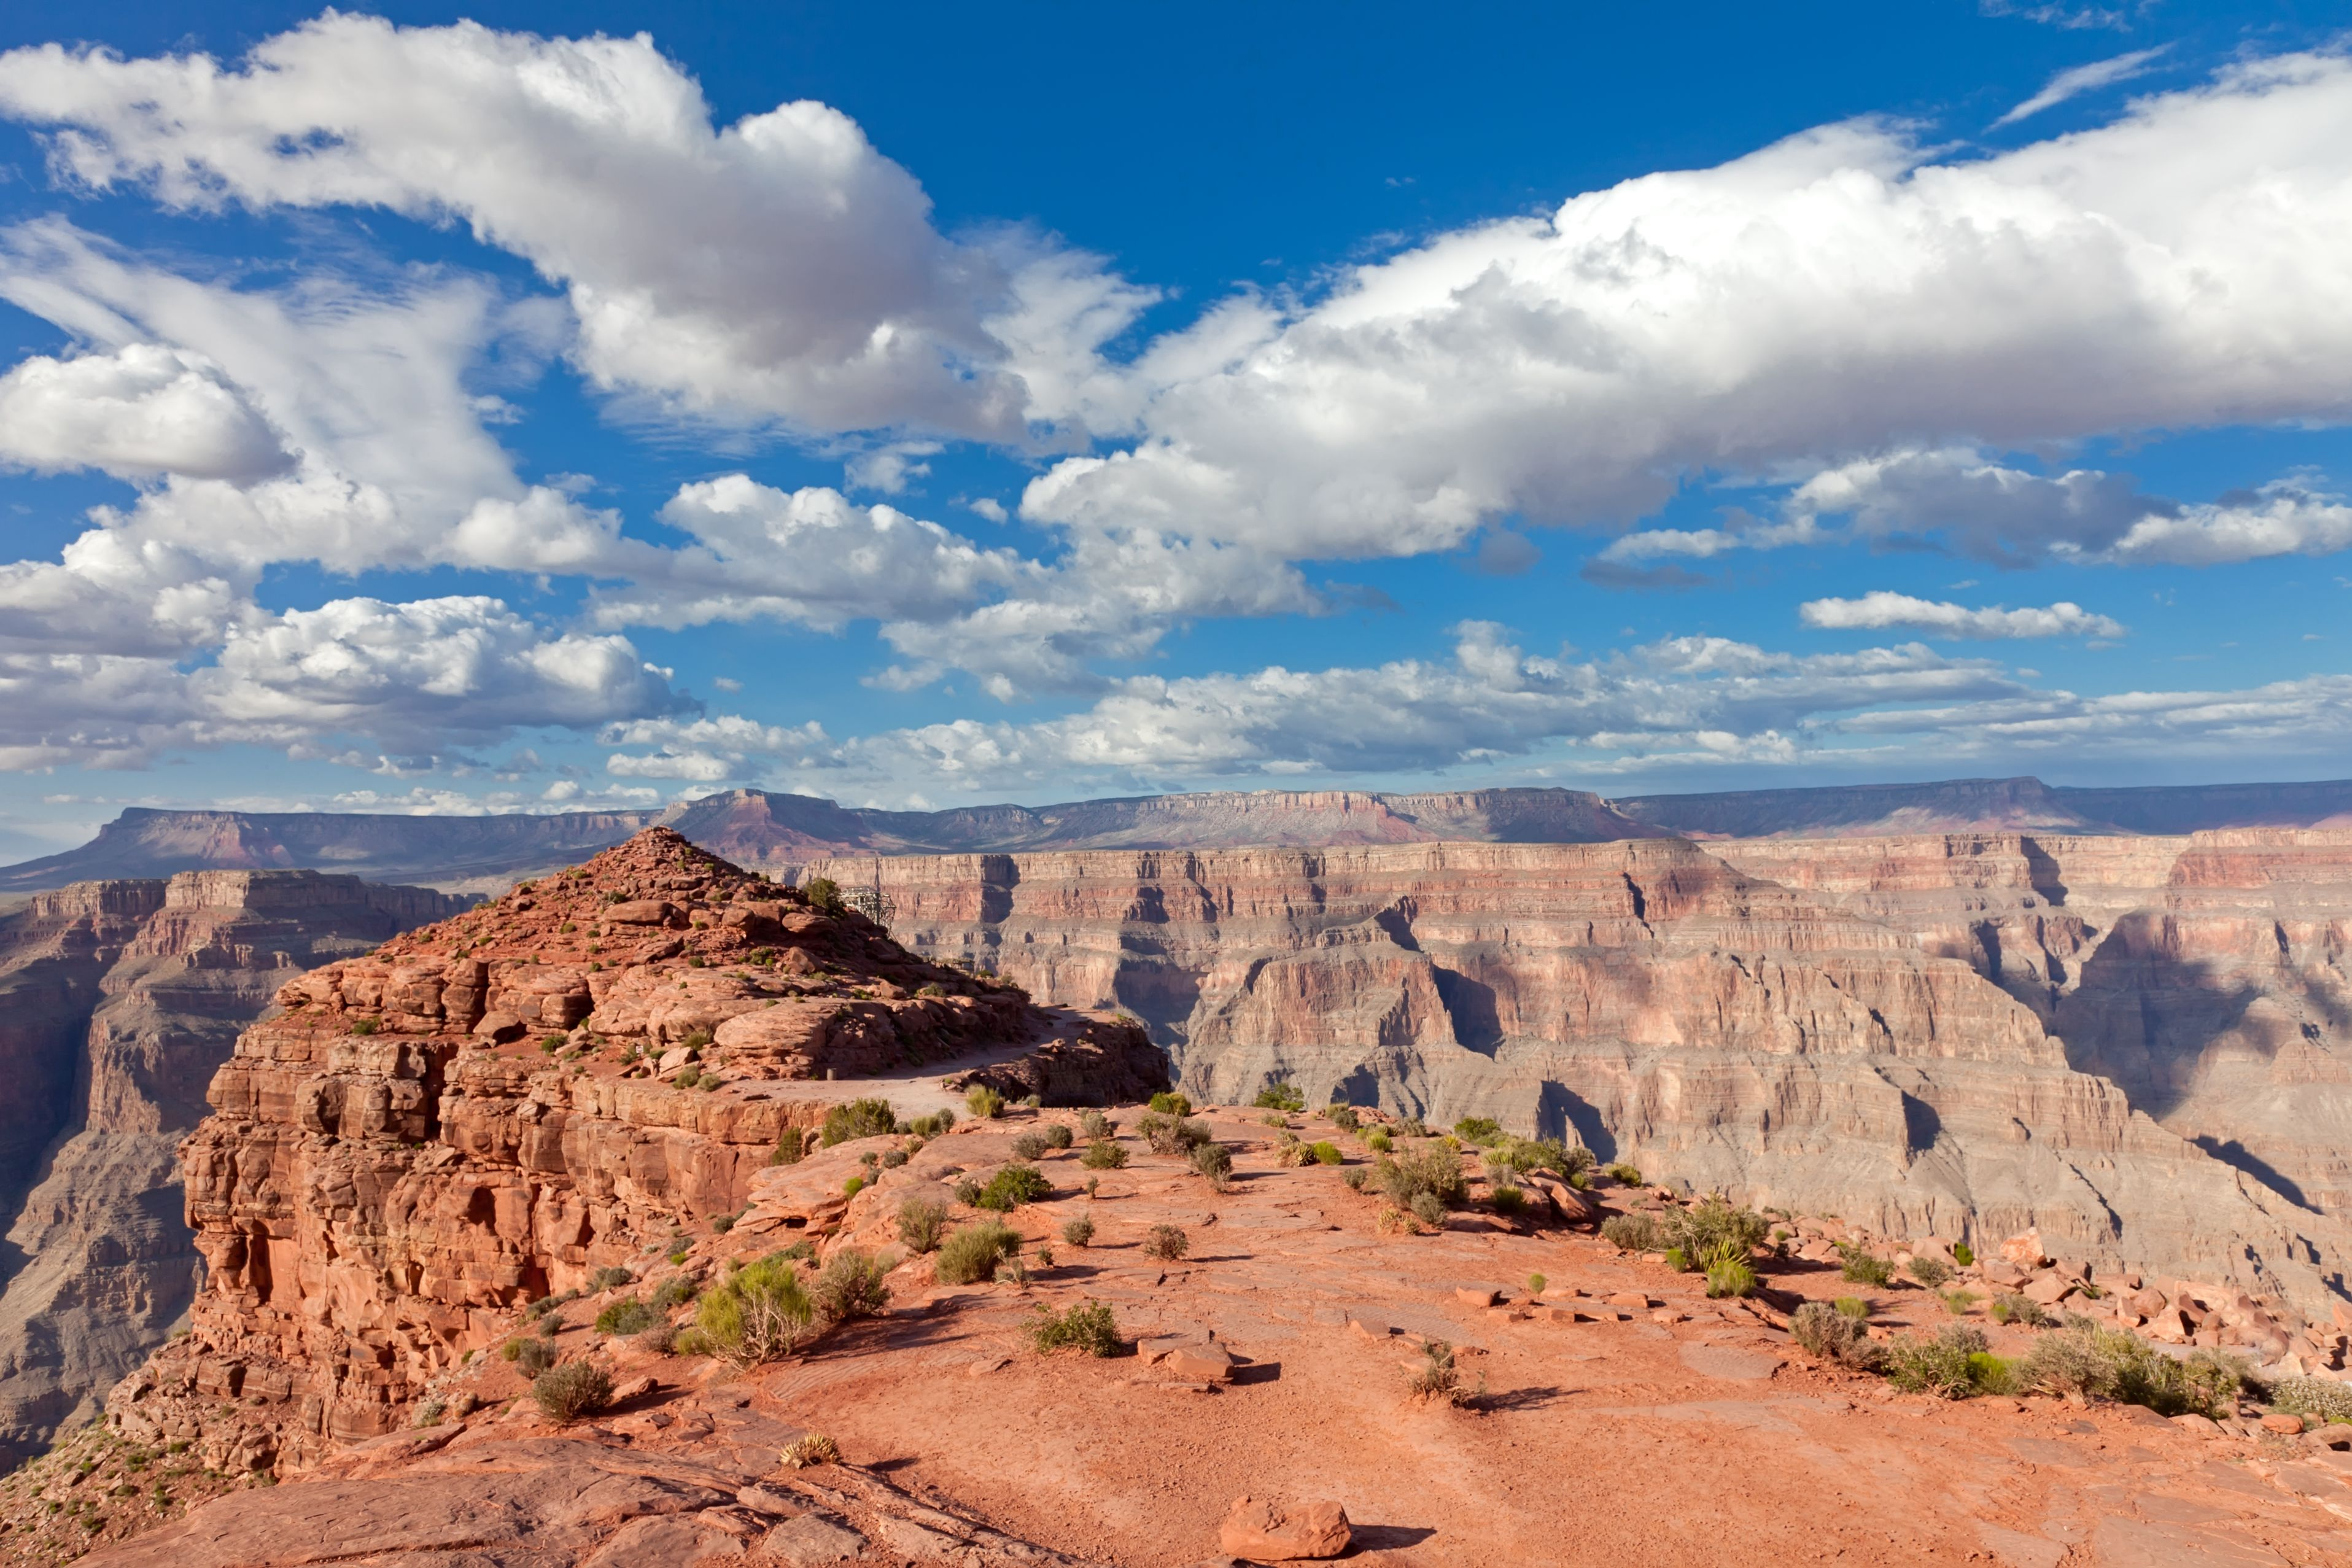 helicopter tour from las vegas to grand canyon with Grand Canyon West Rim Indian Adventure Helicopter Tour on 1 Day Grand Canyon National Park Bus Tour together with serenityhelicopters besides Bighornwildwesttours further Mj Live A Tribute To Michael Jackson furthermore hooverdamtour pany.